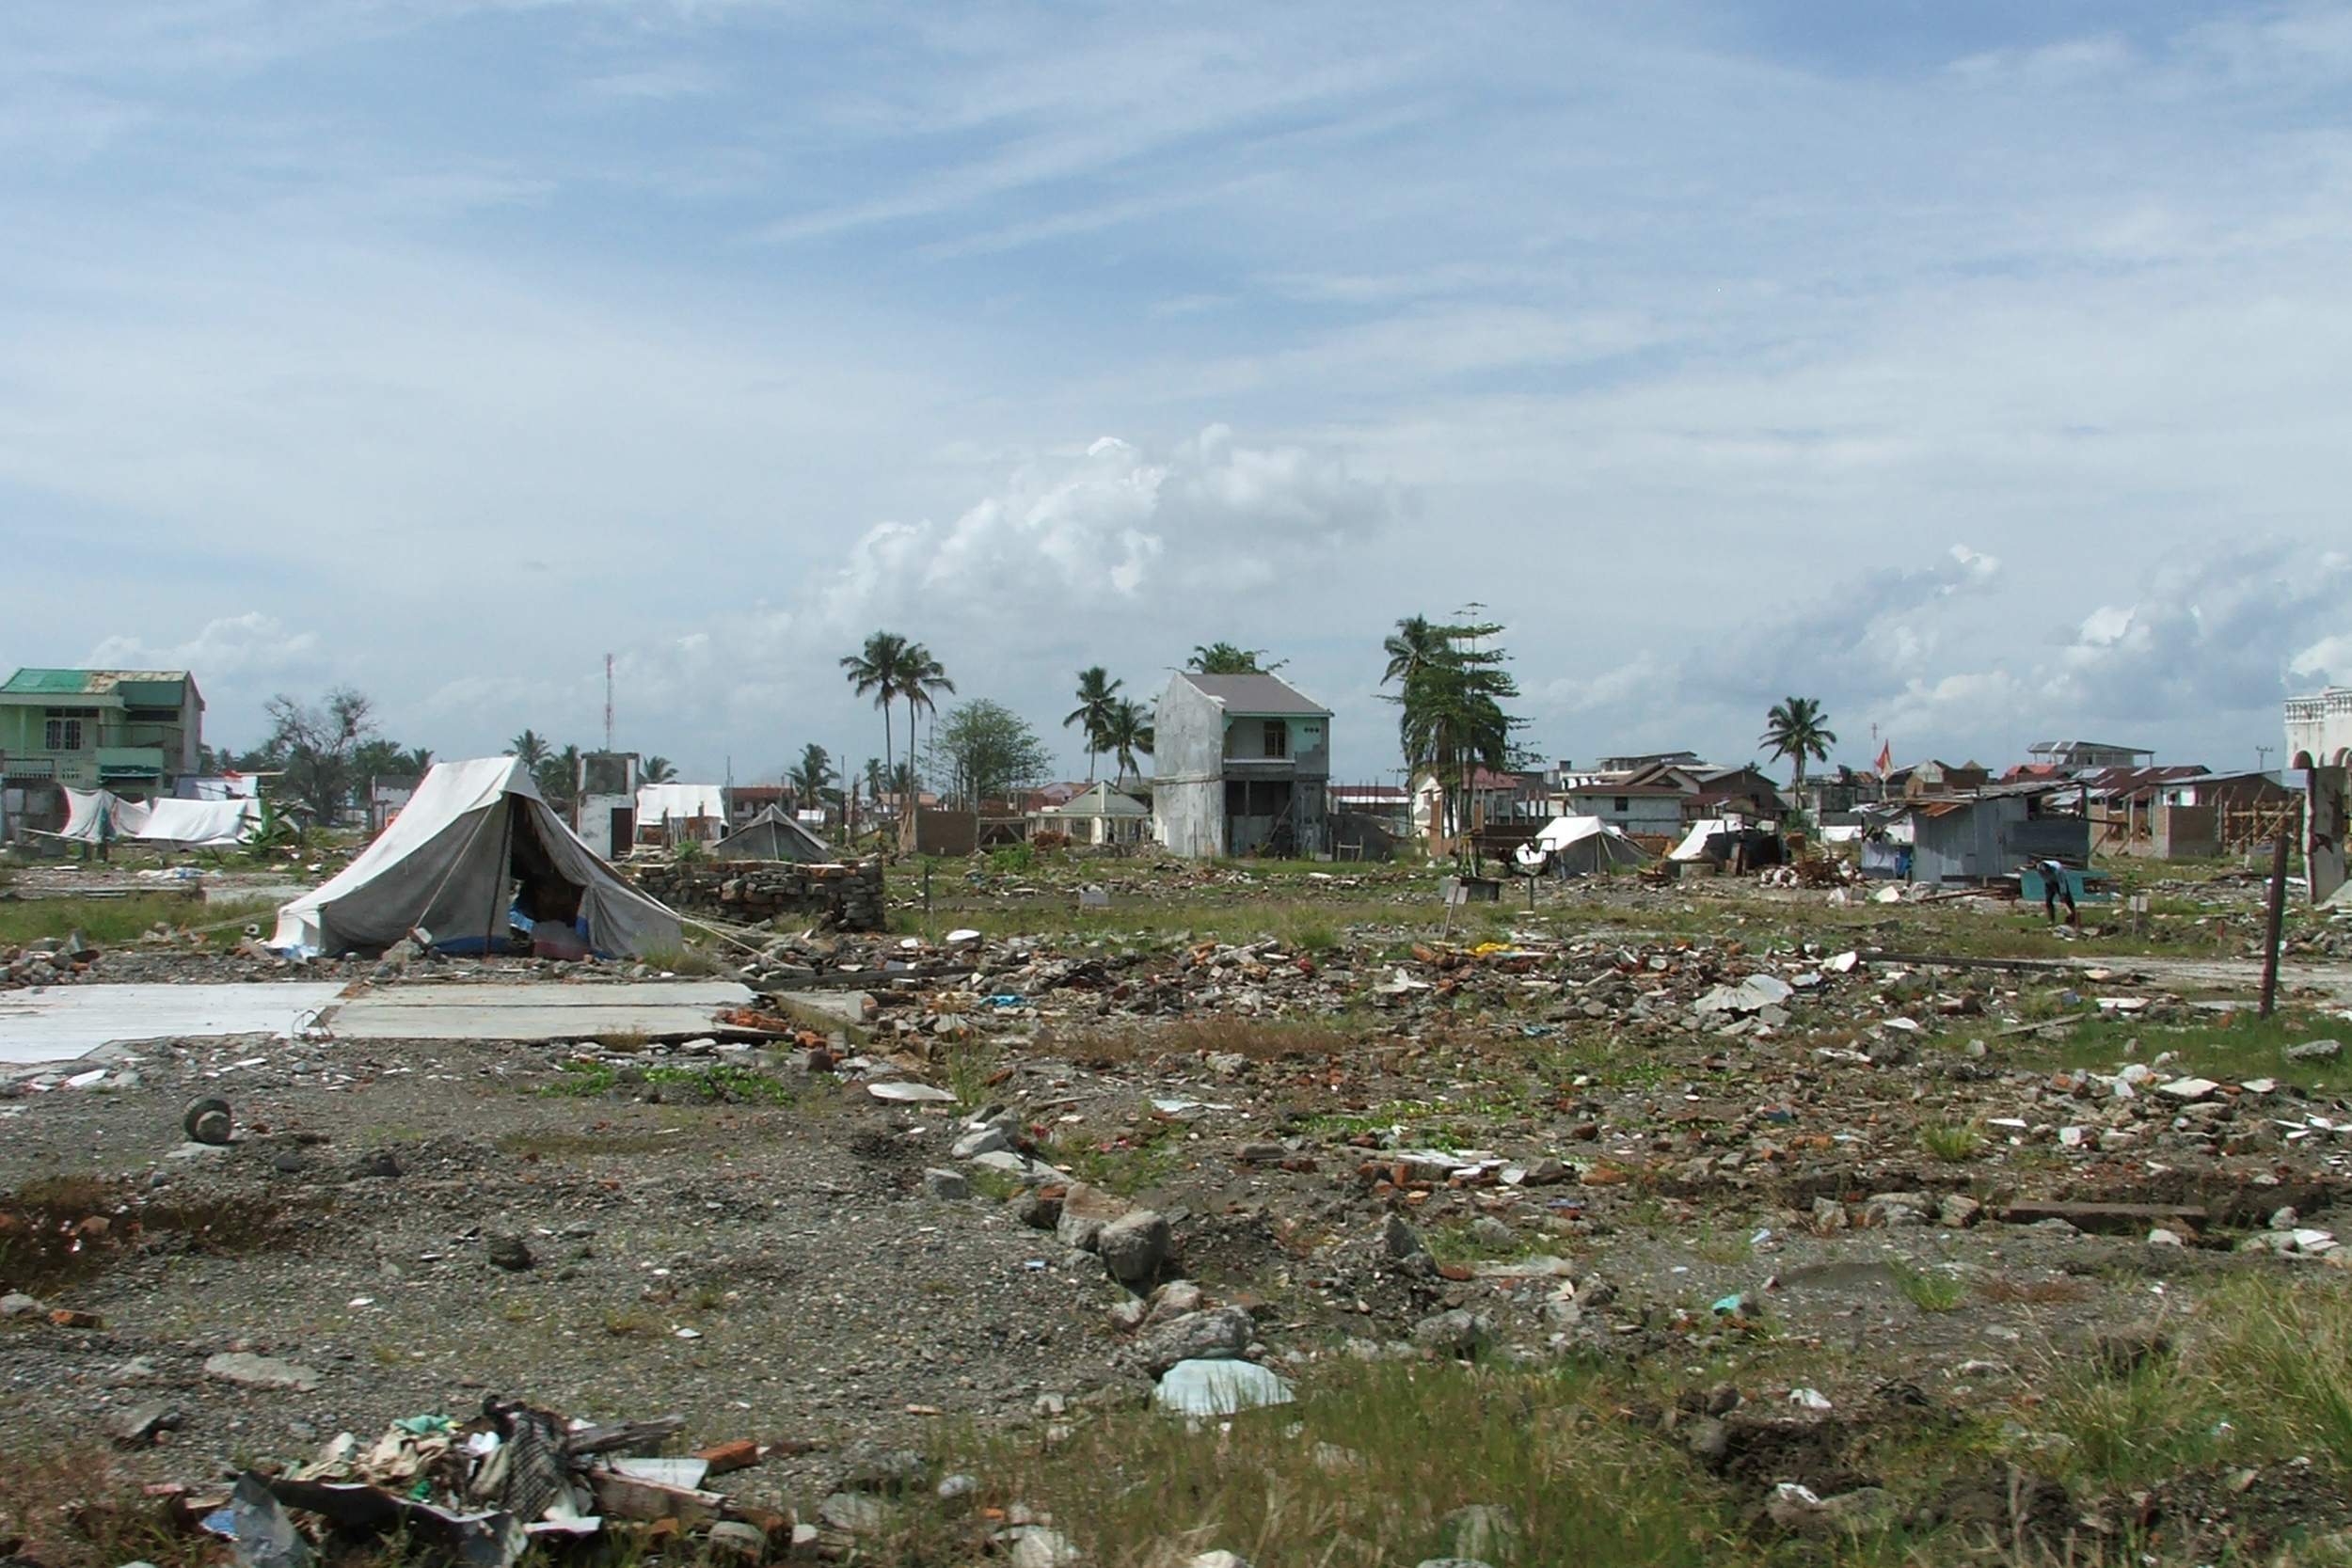 battered homes and debris fill the landscape after the 2004 Indian Ocean tsunami